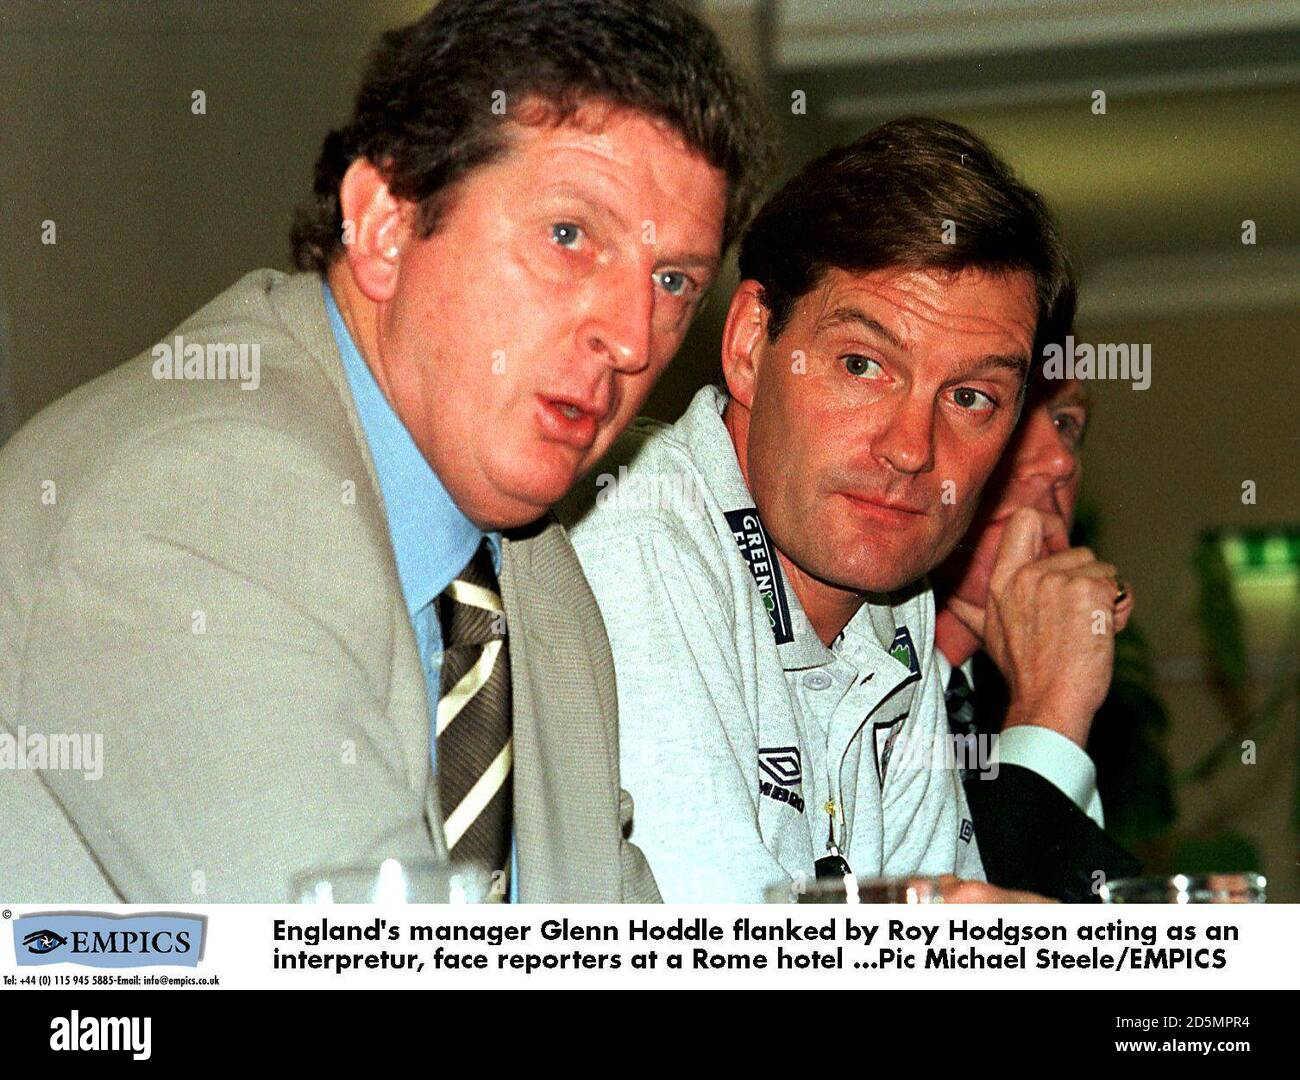 Glenn Hoddle Right High Resolution Stock Photography And Images Alamy